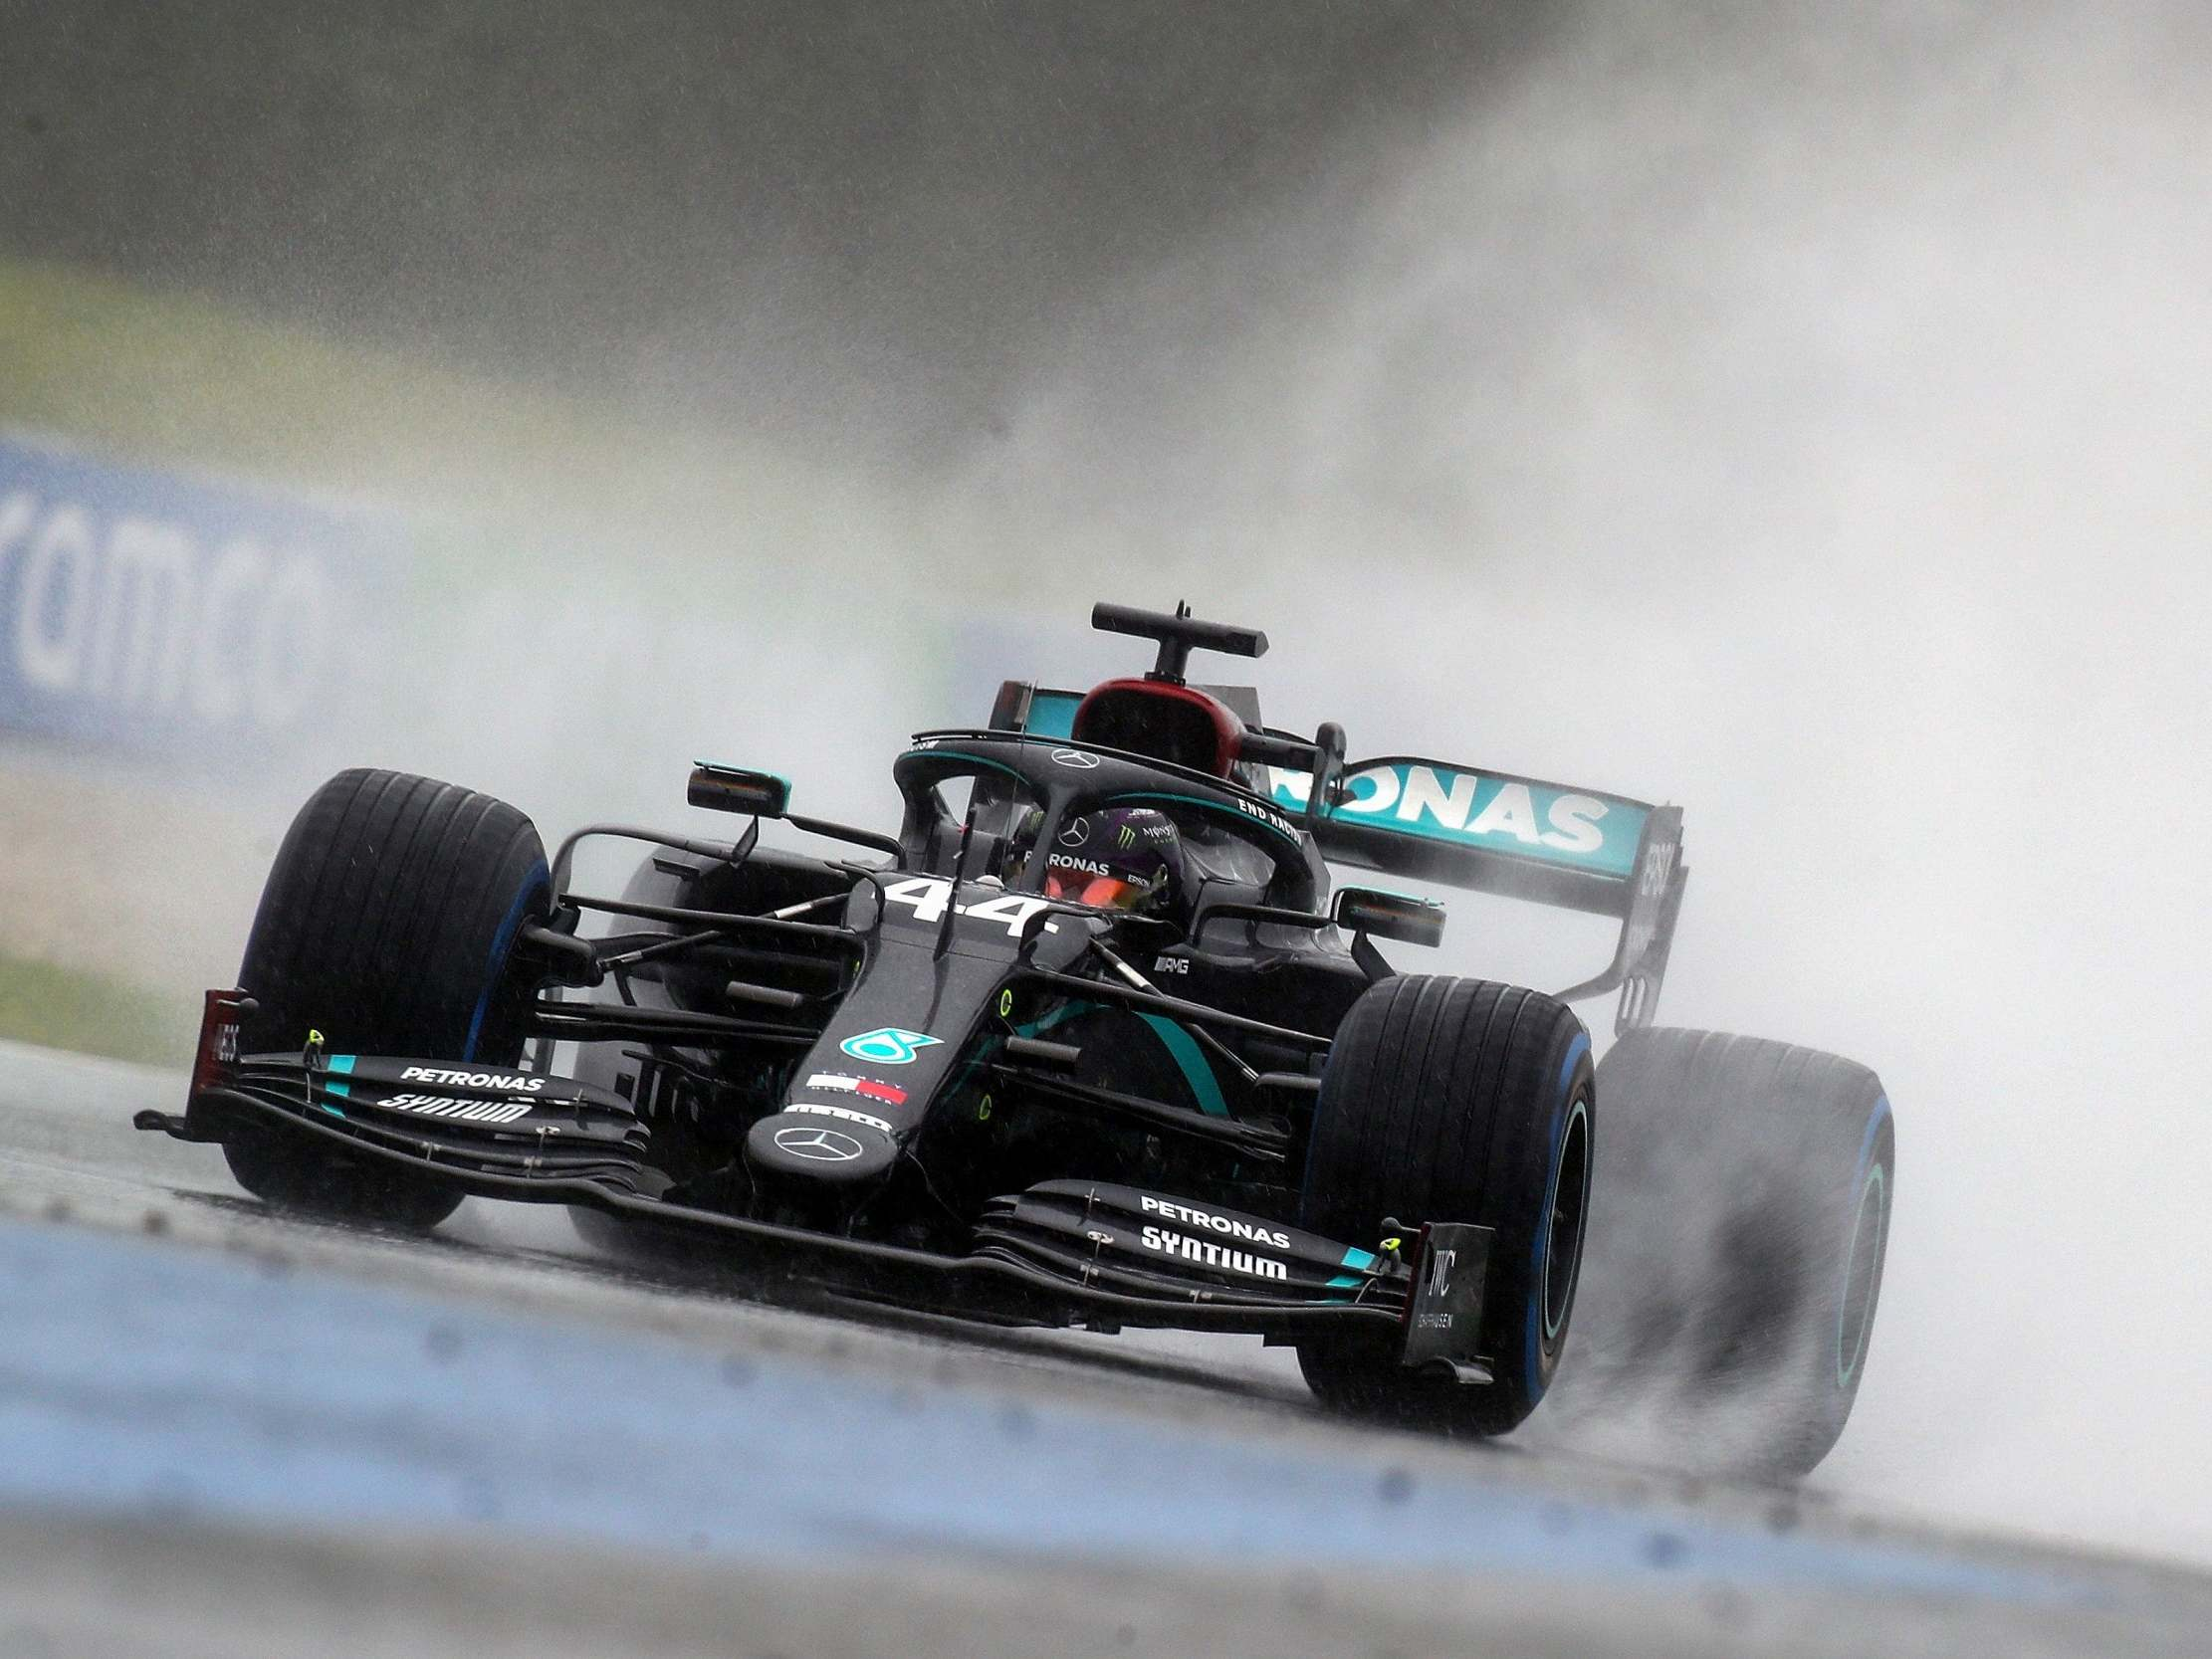 Styrian Grand Prix: Lewis Hamilton takes supreme pole position in wet qualifying 9